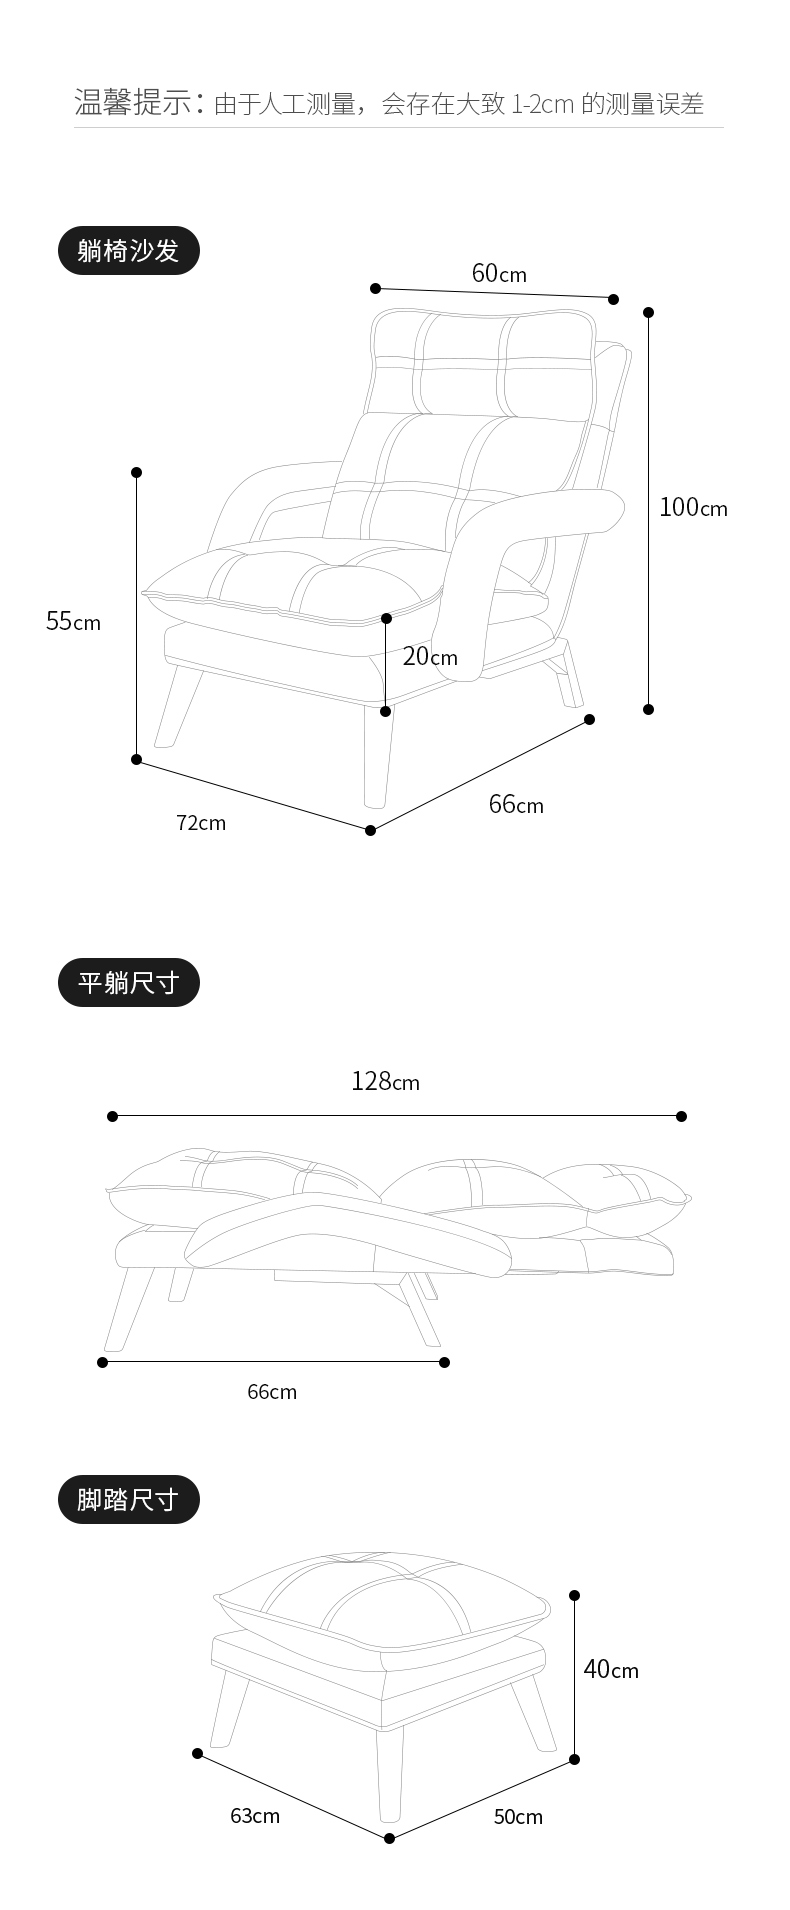 High Quality Adjustable Sofa Bed Single Sofa Chair Recliner Lounge Chair with Armrest Leisure Sofa Set Living Room Furniture